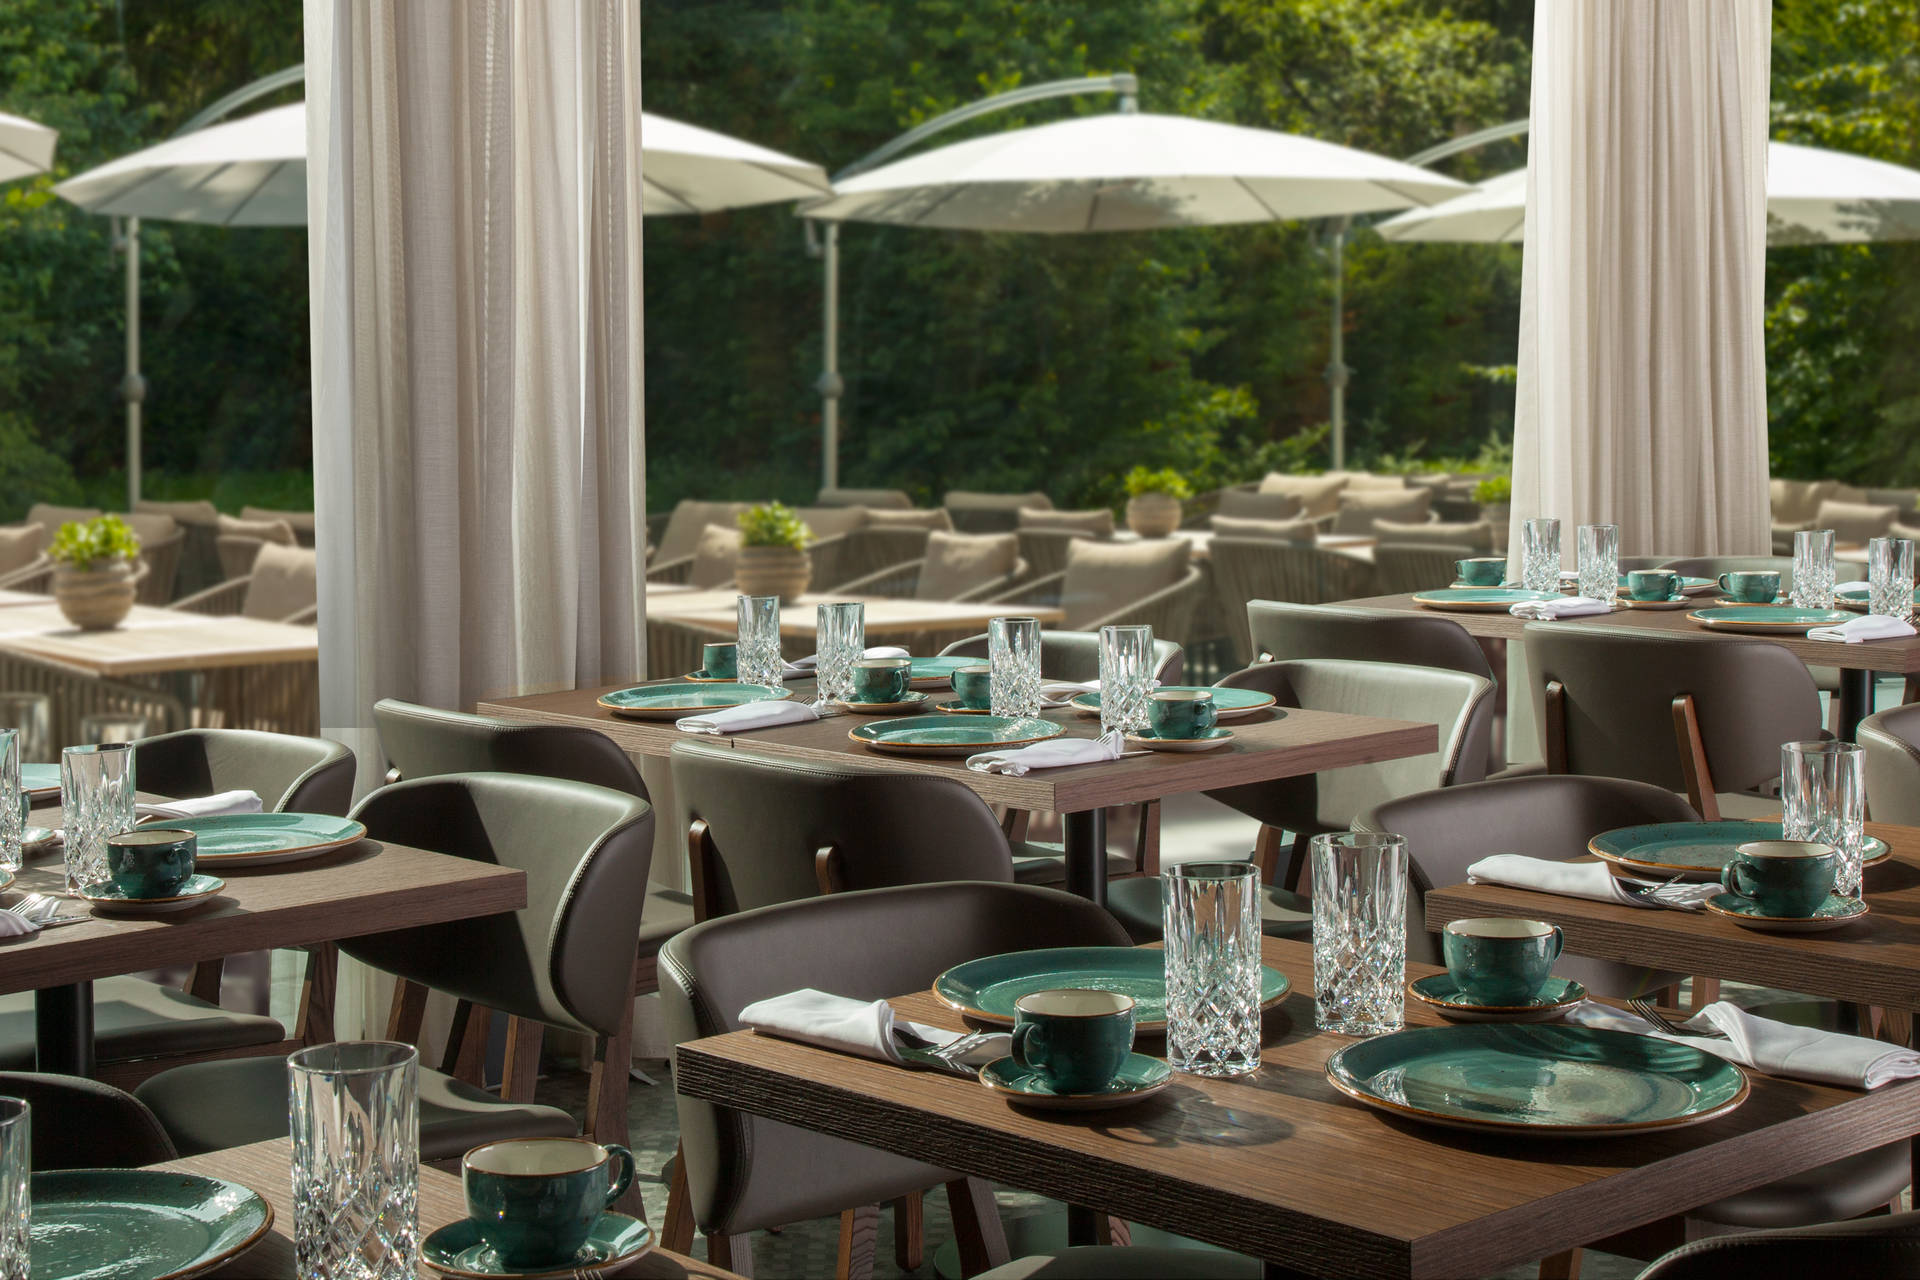 Garden terrace with restaurant in ACASA Suites Zurich